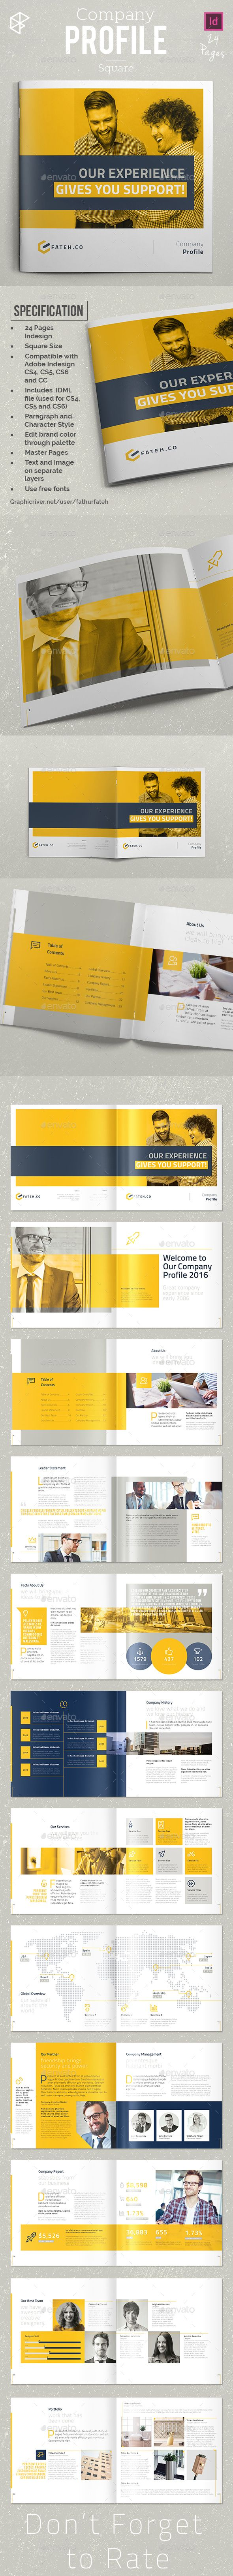 Company Profile  Square — InDesign INDD #financial #multipurpose • Available here → https://graphicriver.net/item/company-profile-square/17946376?ref=pxcr